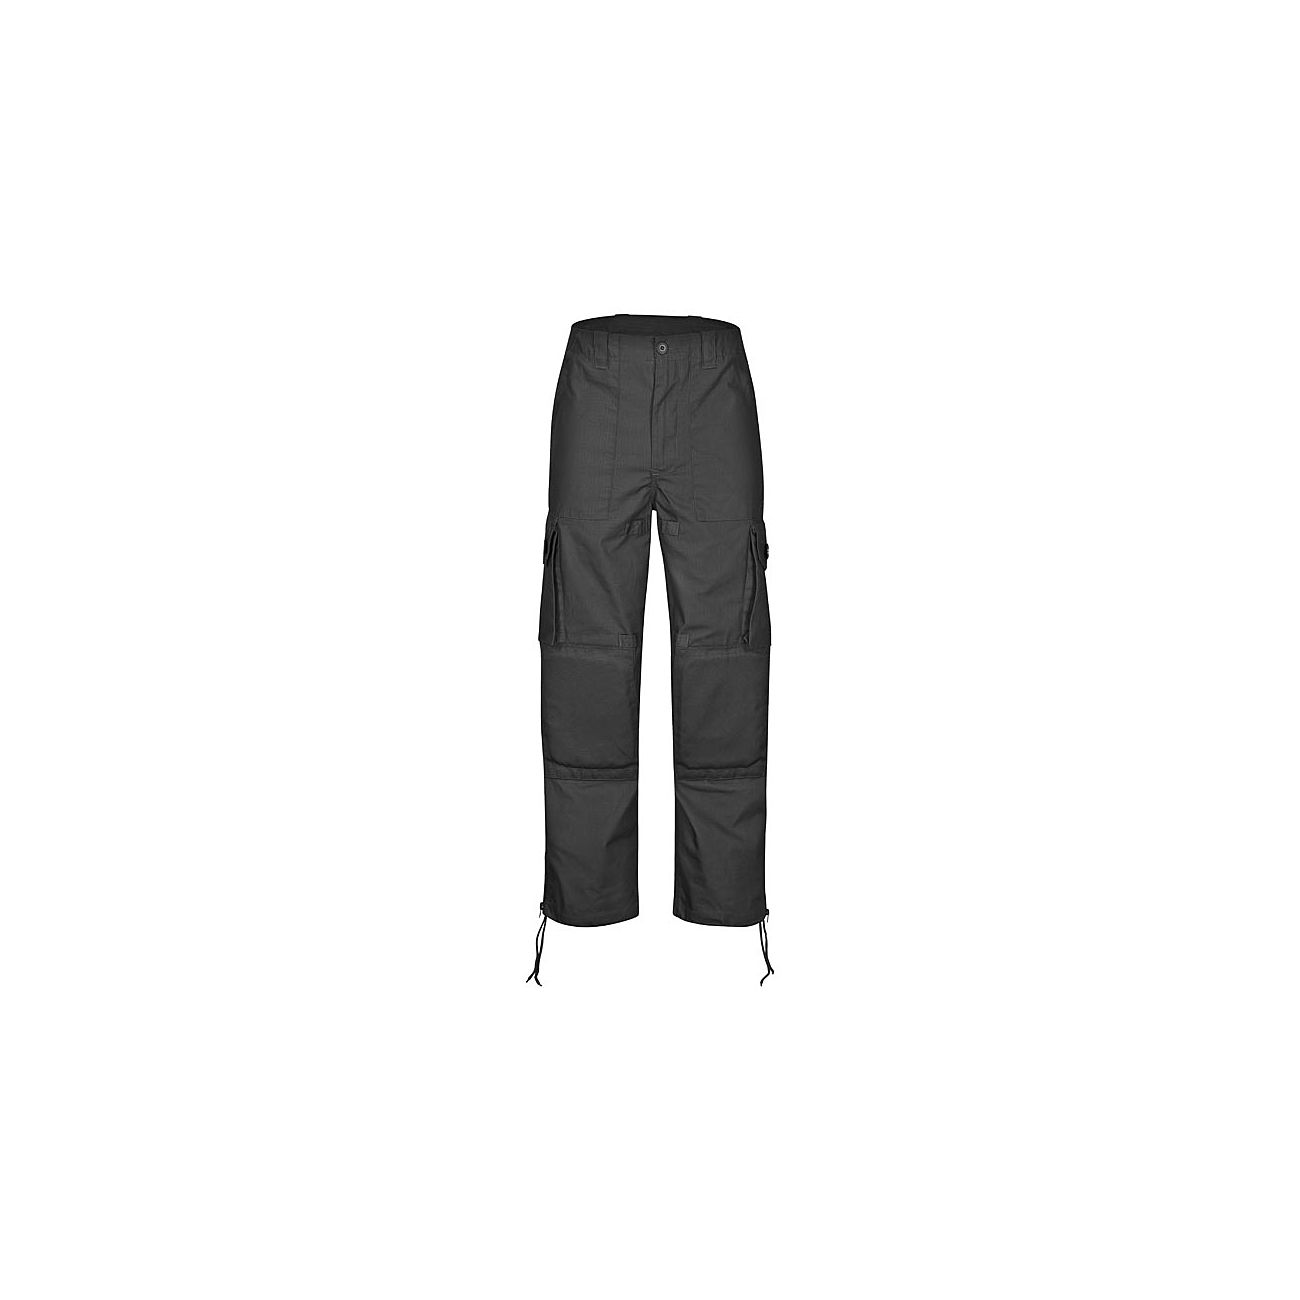 Kommandohose Light Weight Mil-Tec schwarz 0